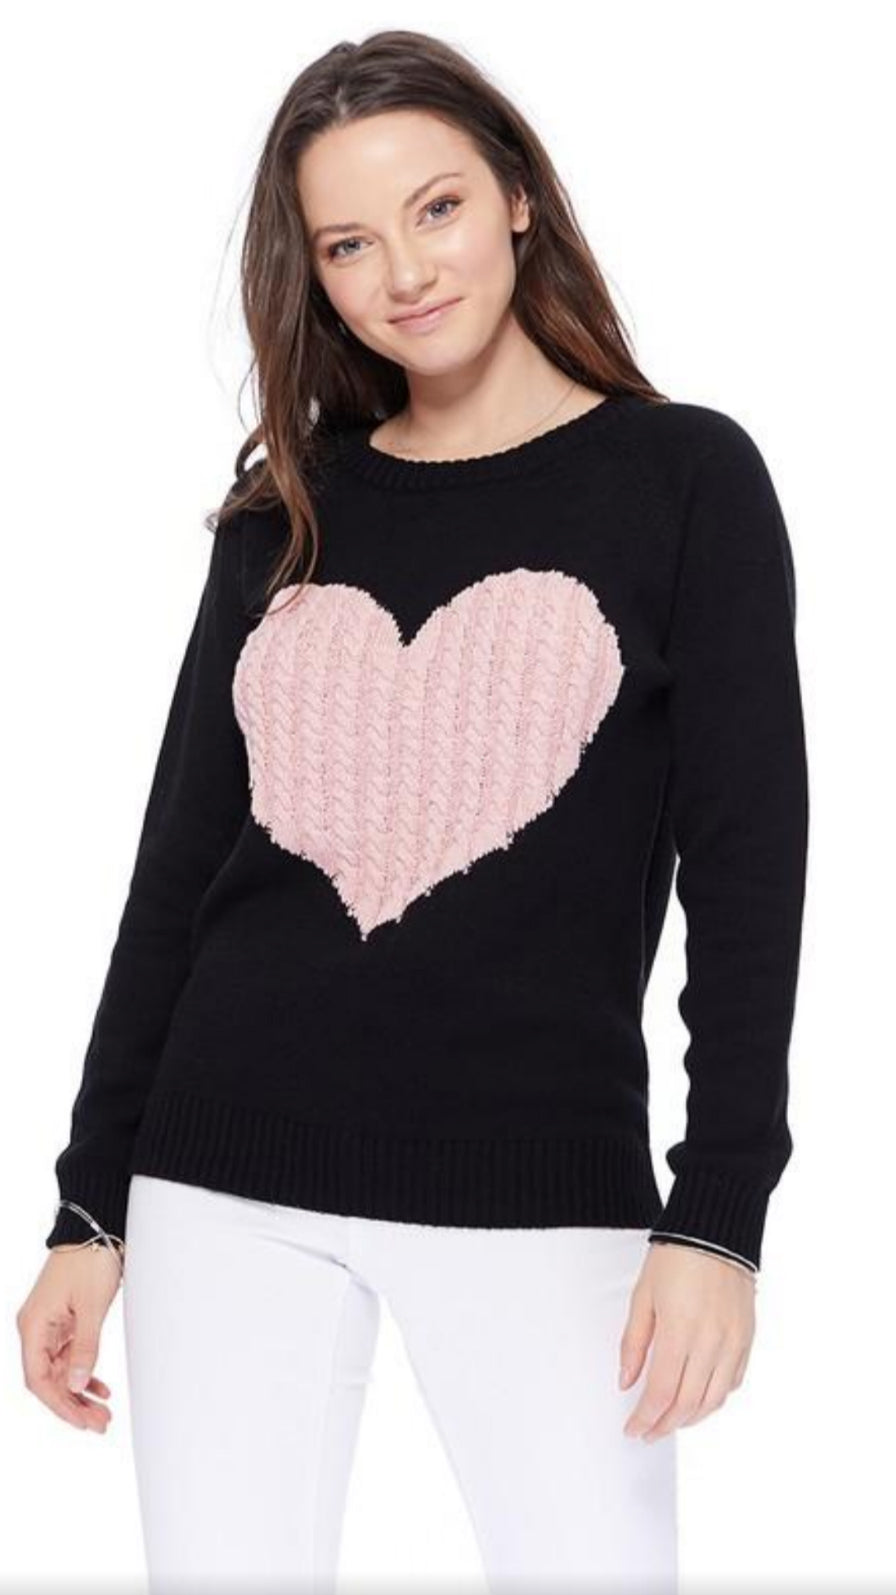 Love Her Sweater - Black/Pink - OWN YOUR ELEGANCE